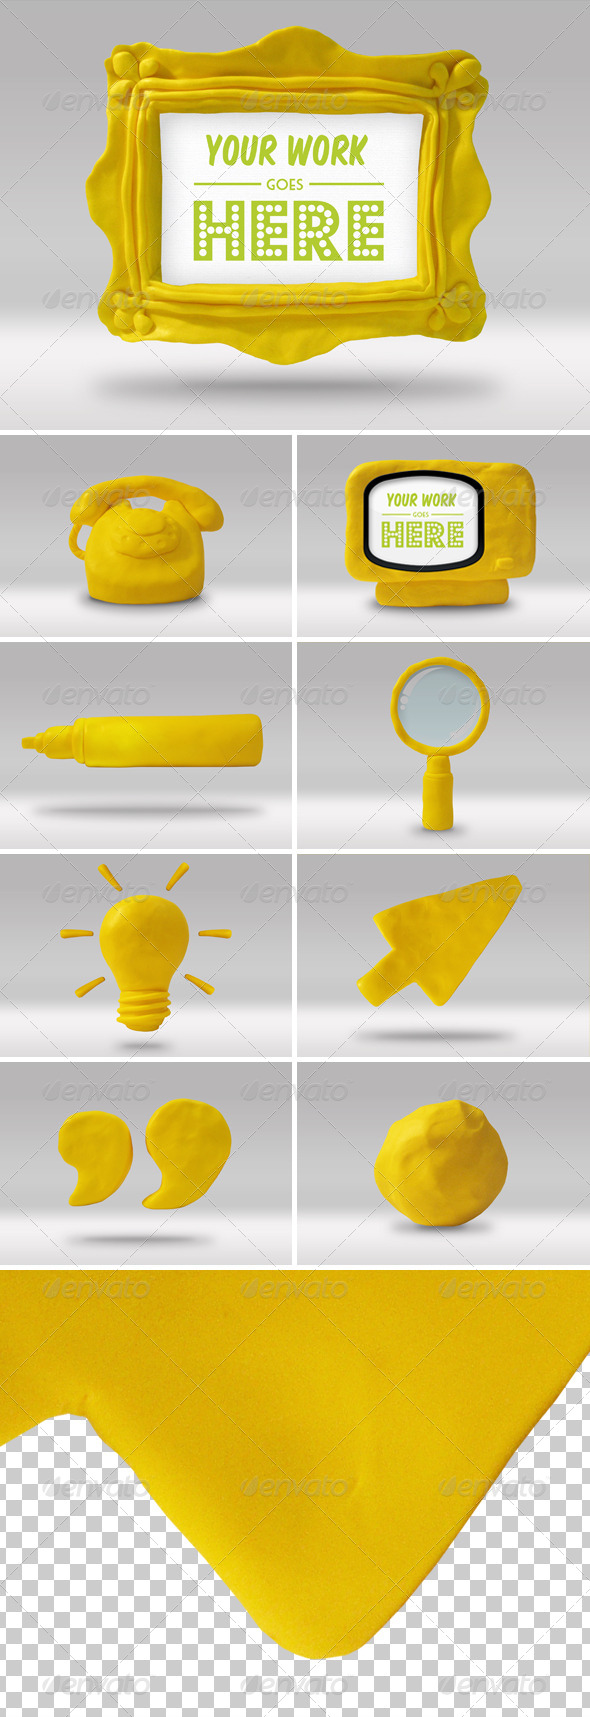 Set of 9 Handmade High-res Play Doh Icons - Web Icons